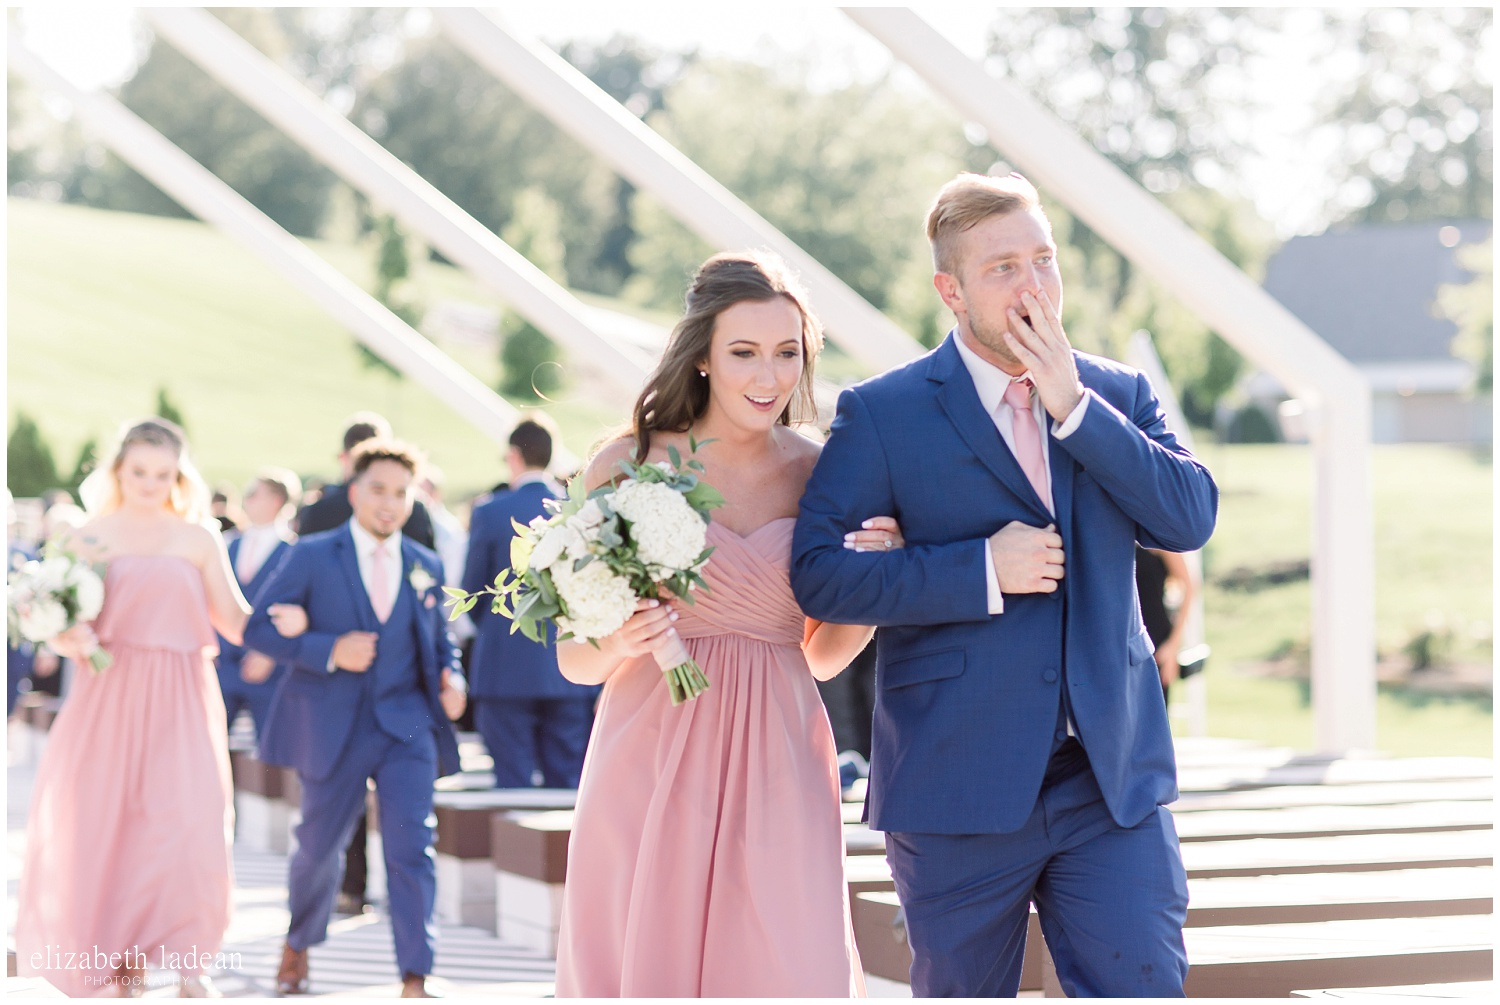 -behind-the-scenes-of-a-wedding-photographer-2018-elizabeth-ladean-photography-photo_3500.jpg